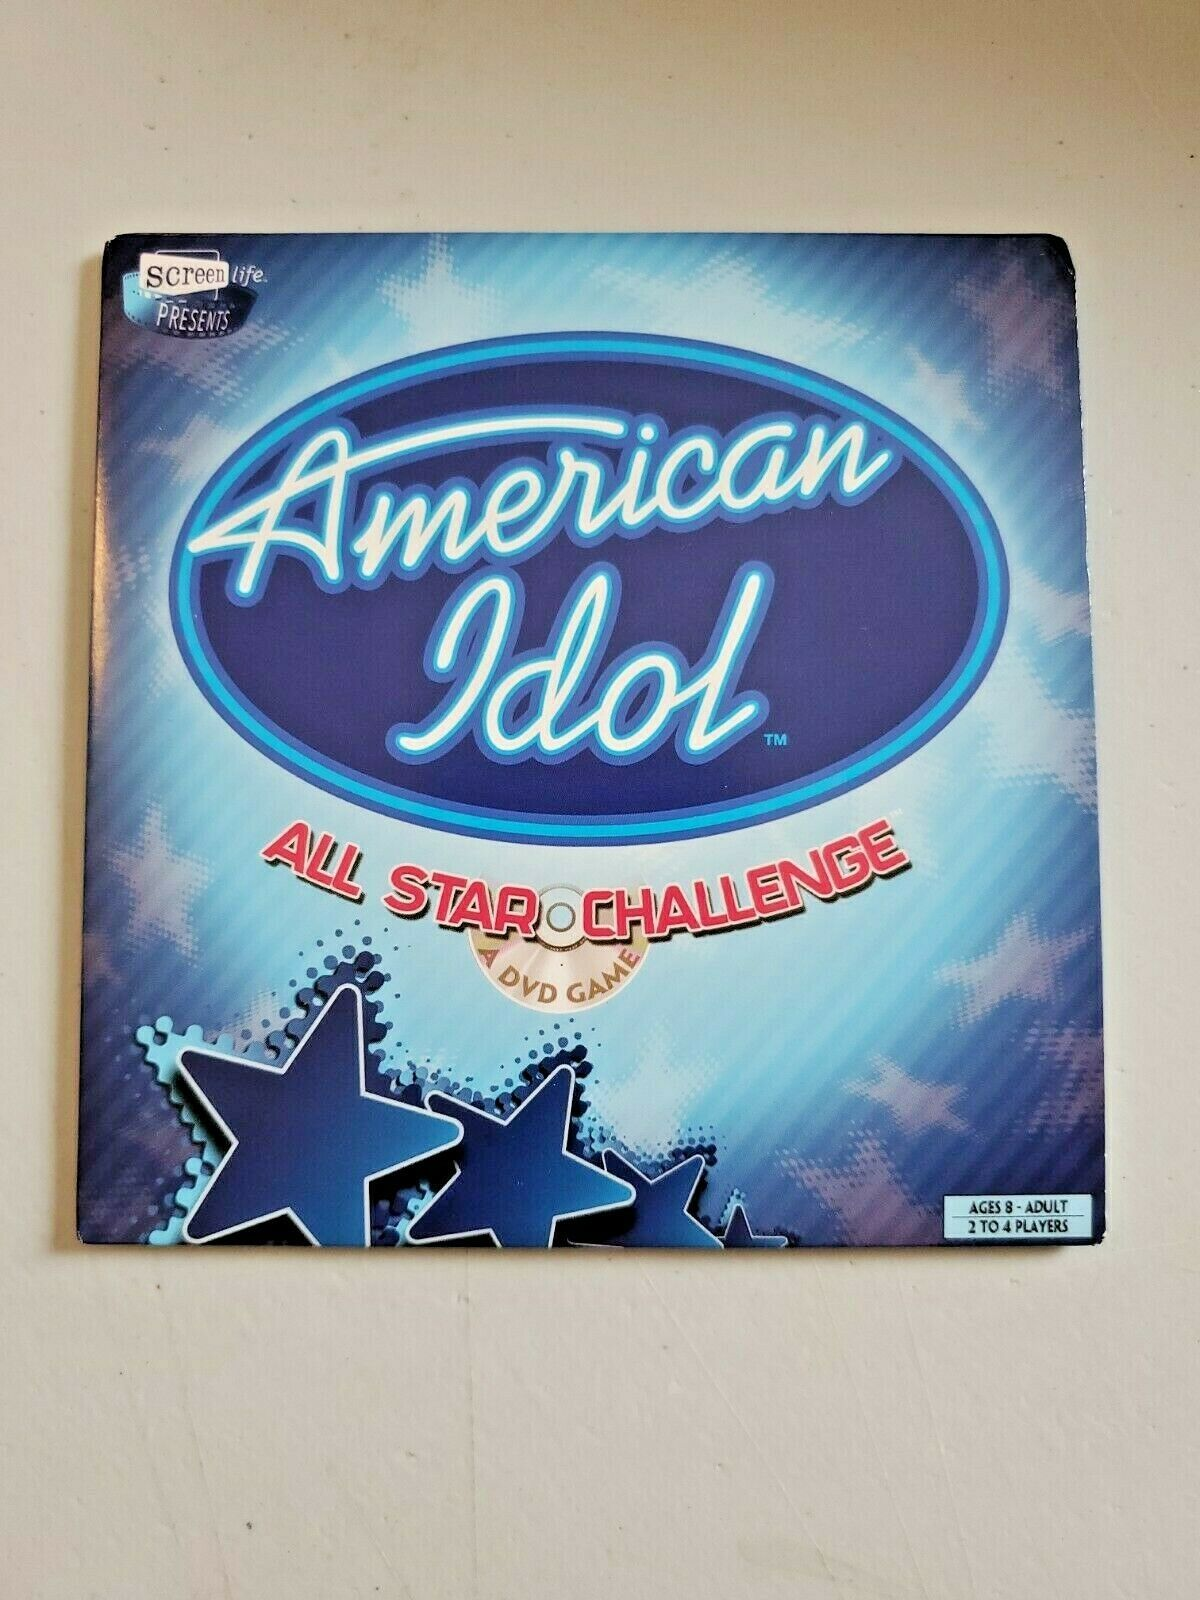 NEW American Idol All Star Challenge DVD Game Replacement DVD - $9.95